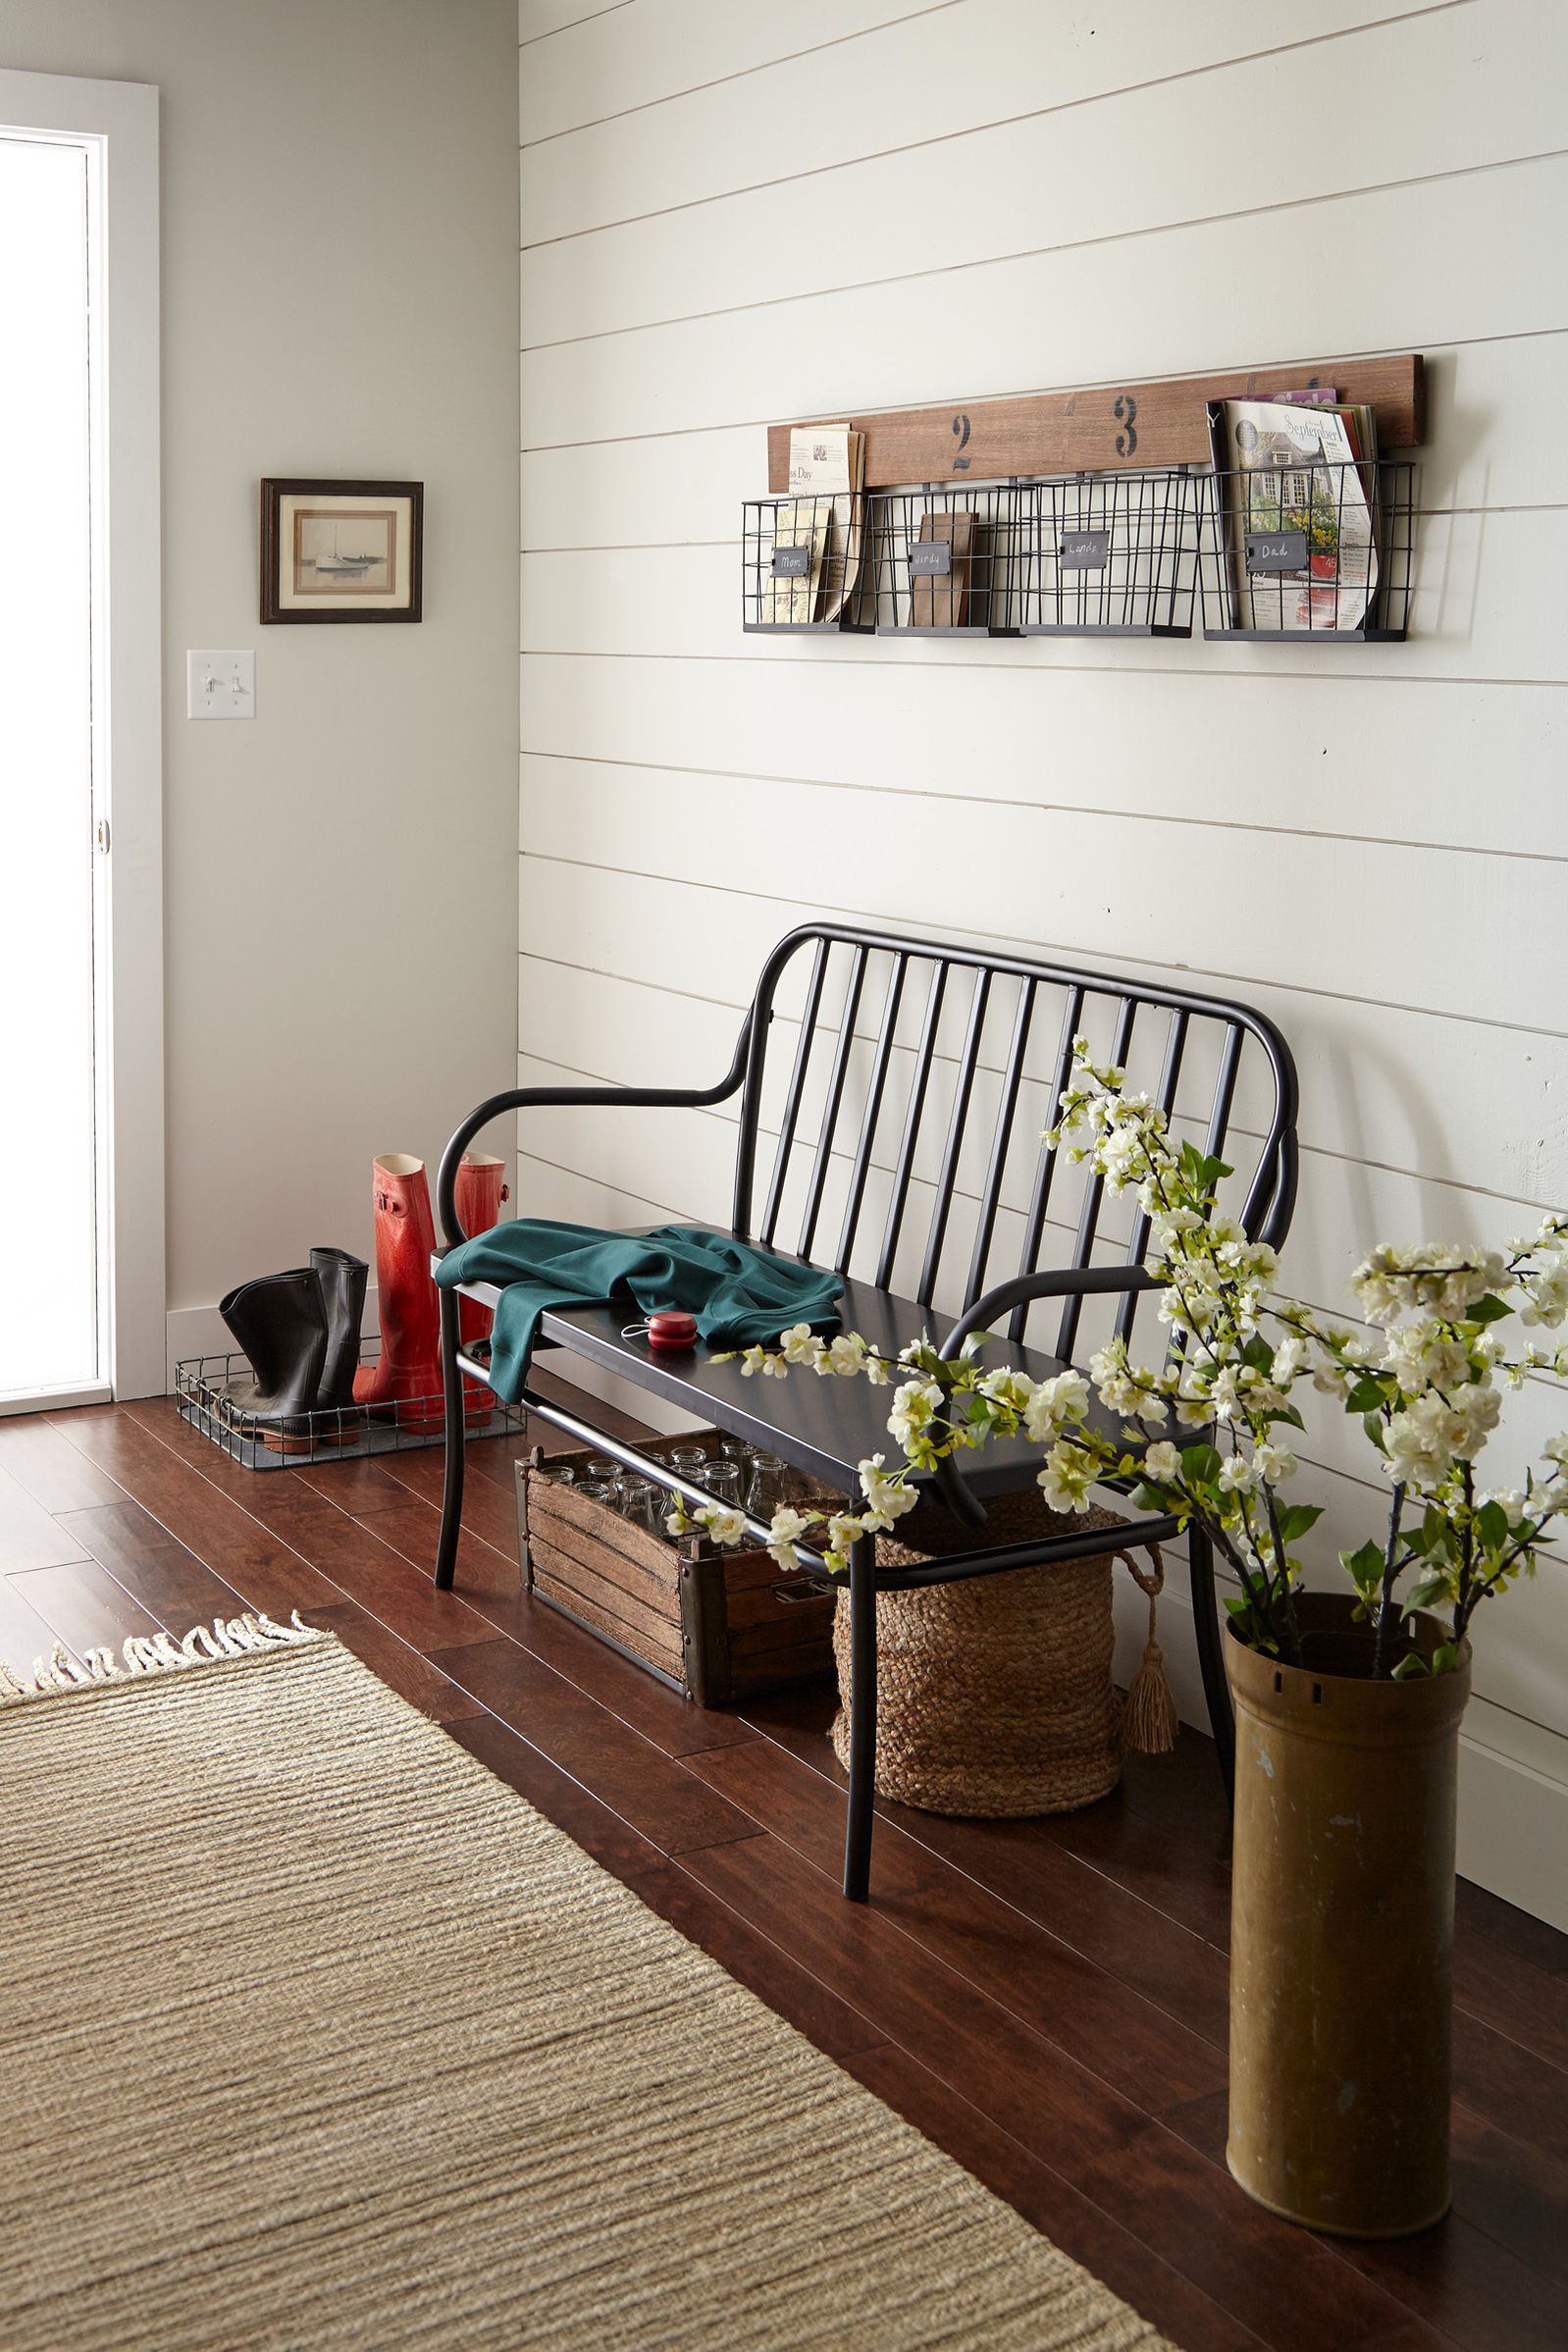 Farmhouse style entry with black bench, shiplap, rustic decor. Paint color is Kilz Shiplap.